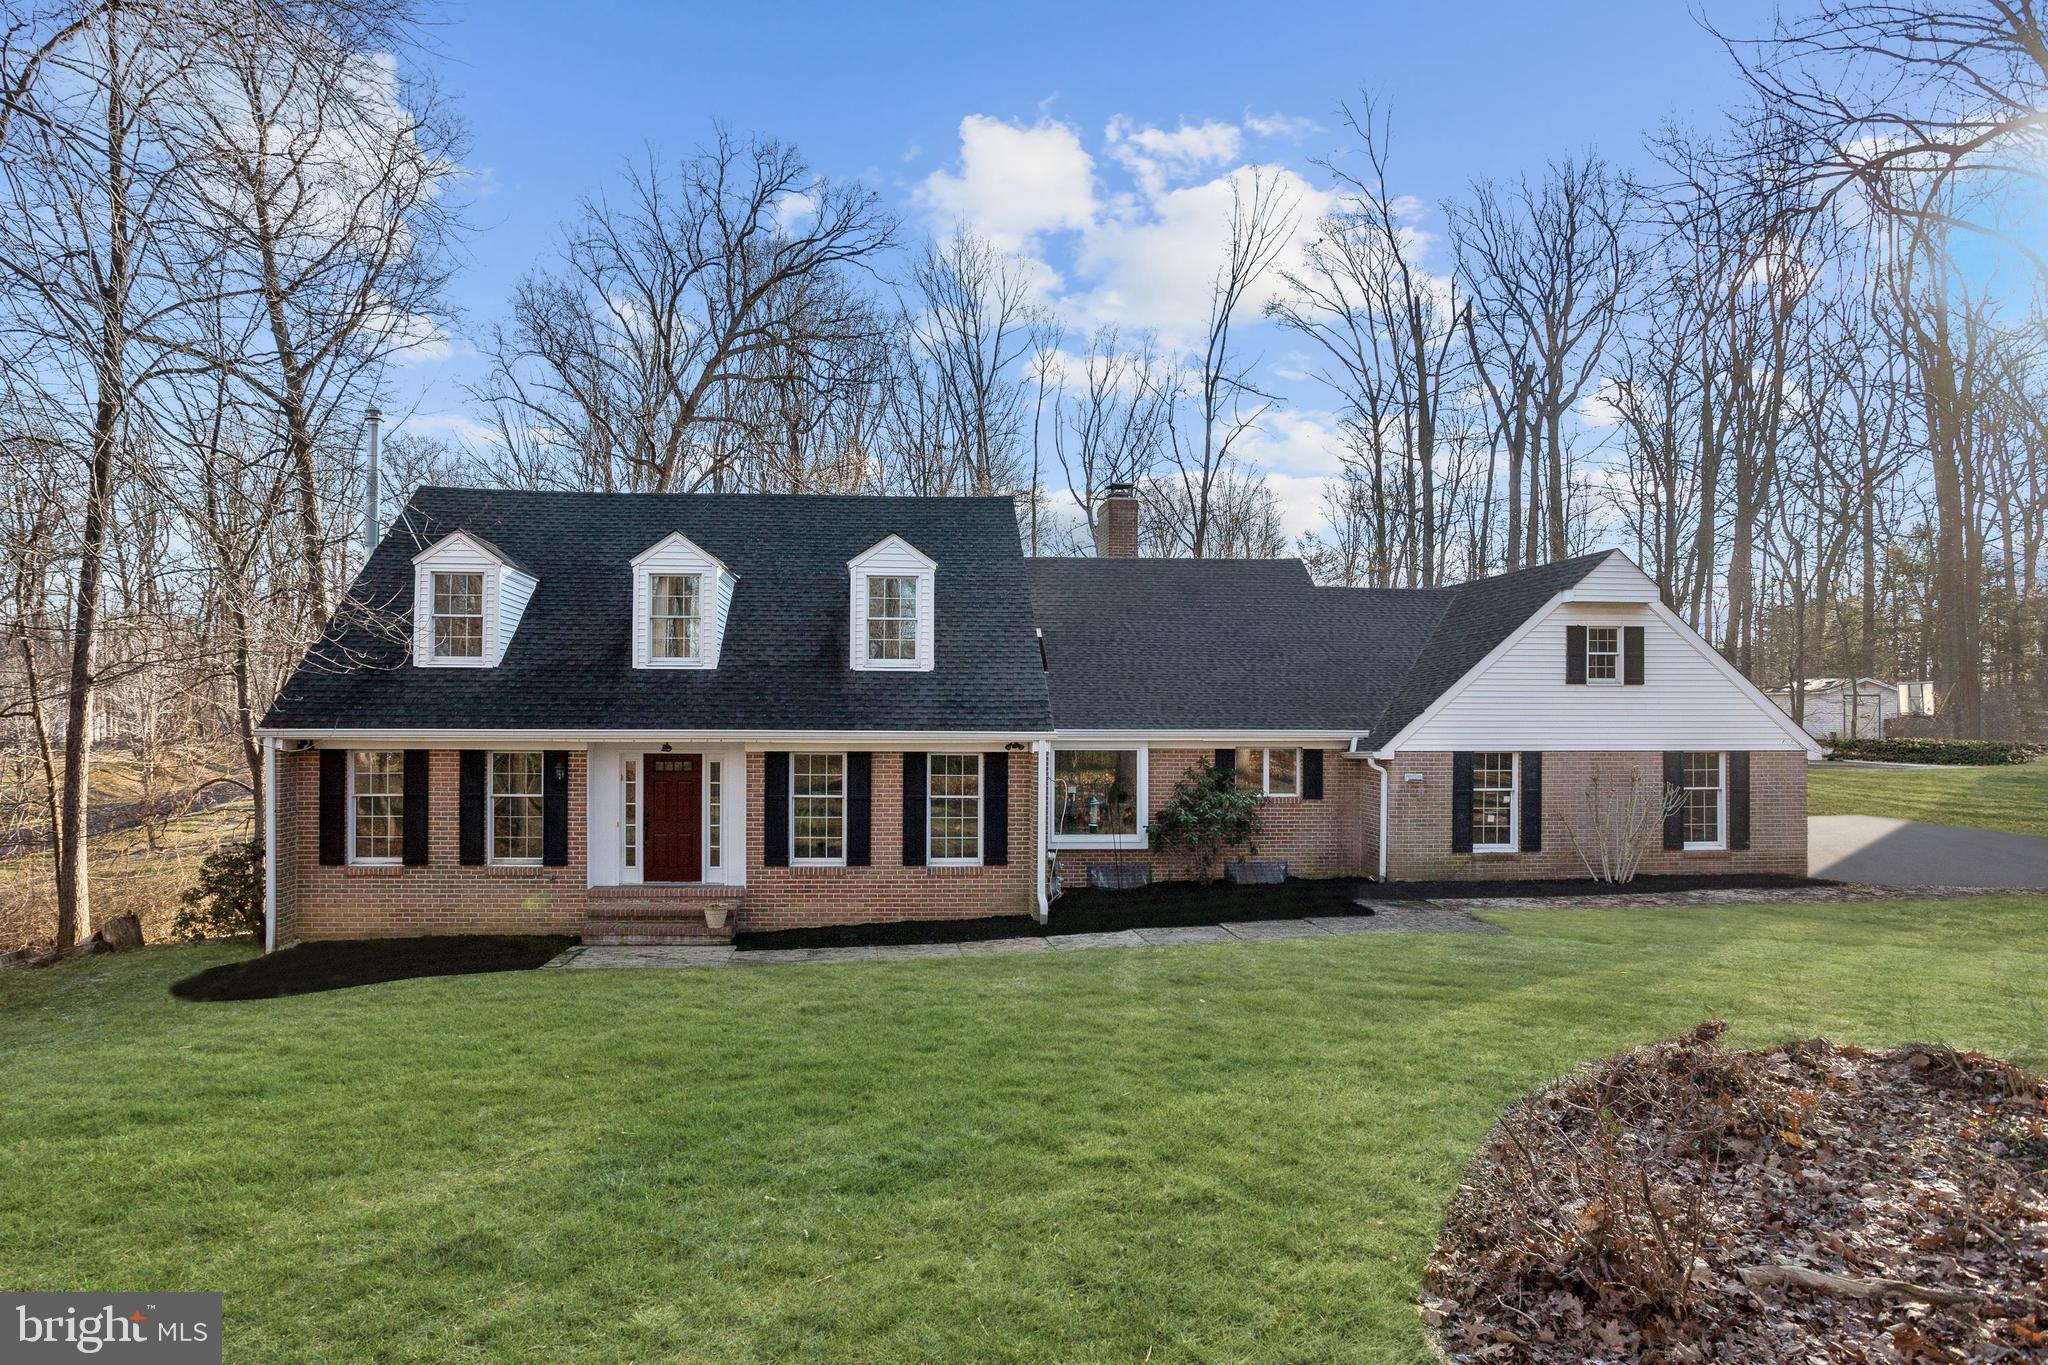 ** PENDING RELEASE***Beautiful Cape Cod style home on nearly one-acre boasting hardwood floors, crow